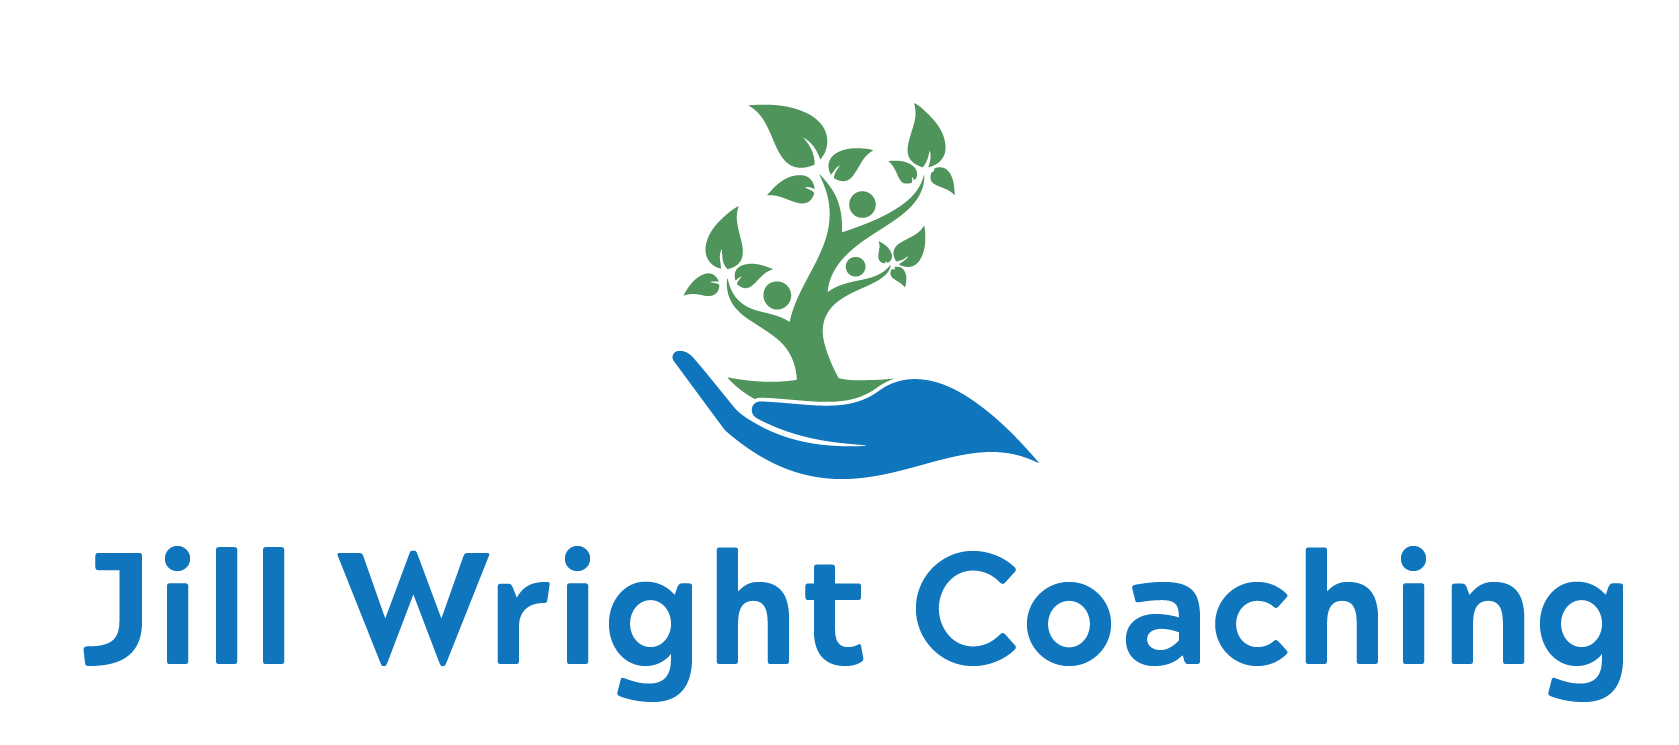 Jill Wright Coaching